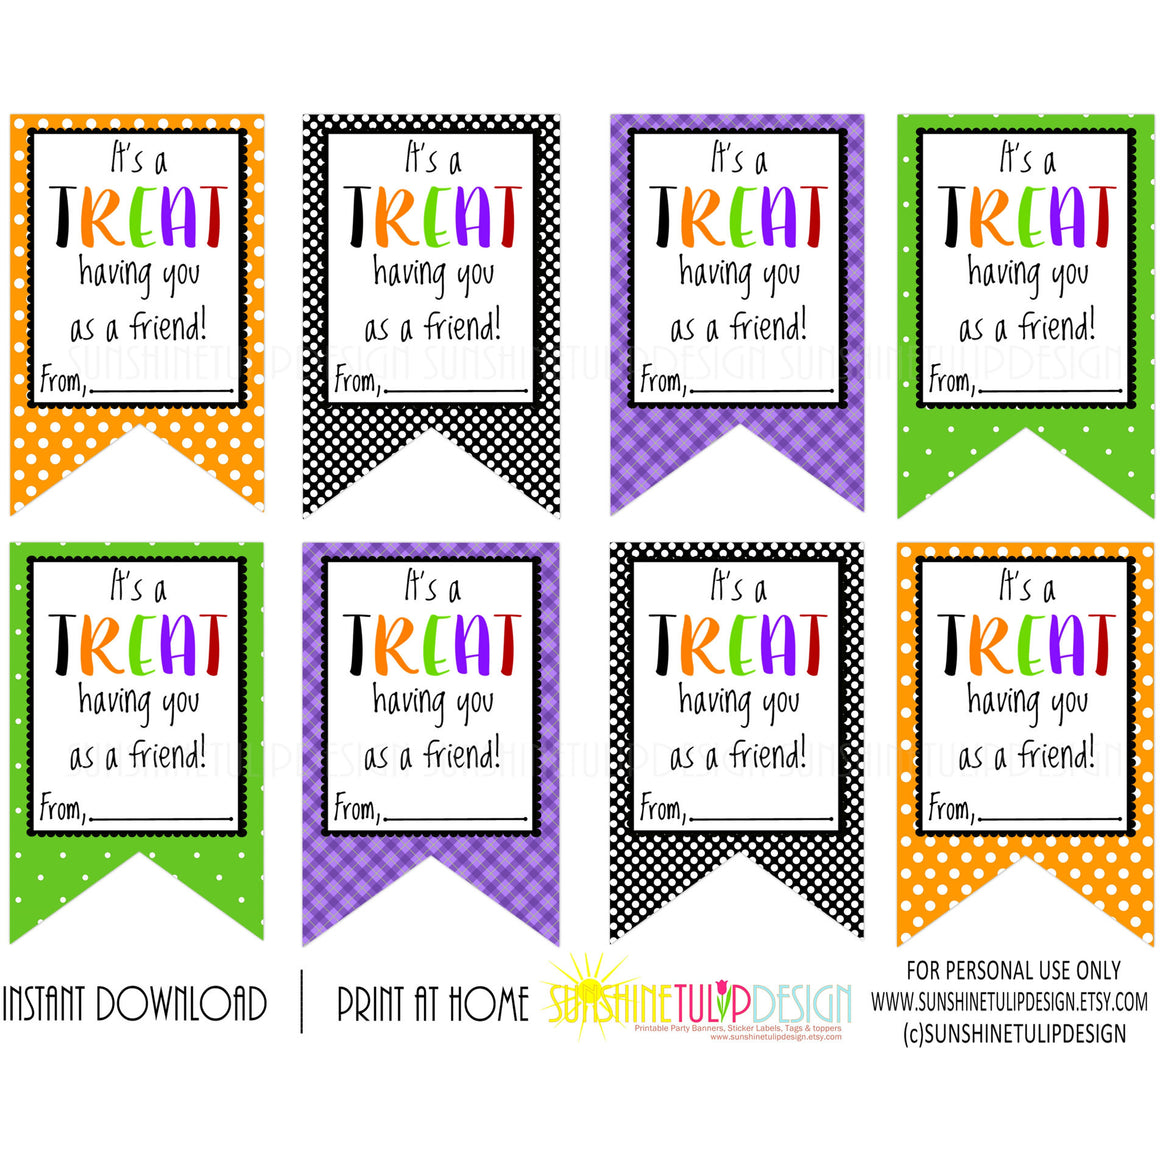 Printable Halloween Gift Tags, It's a TREAT Having You as a Friend Halloween Gift Tags by SUNSHINETULIPDESIGN - Sunshinetulipdesign